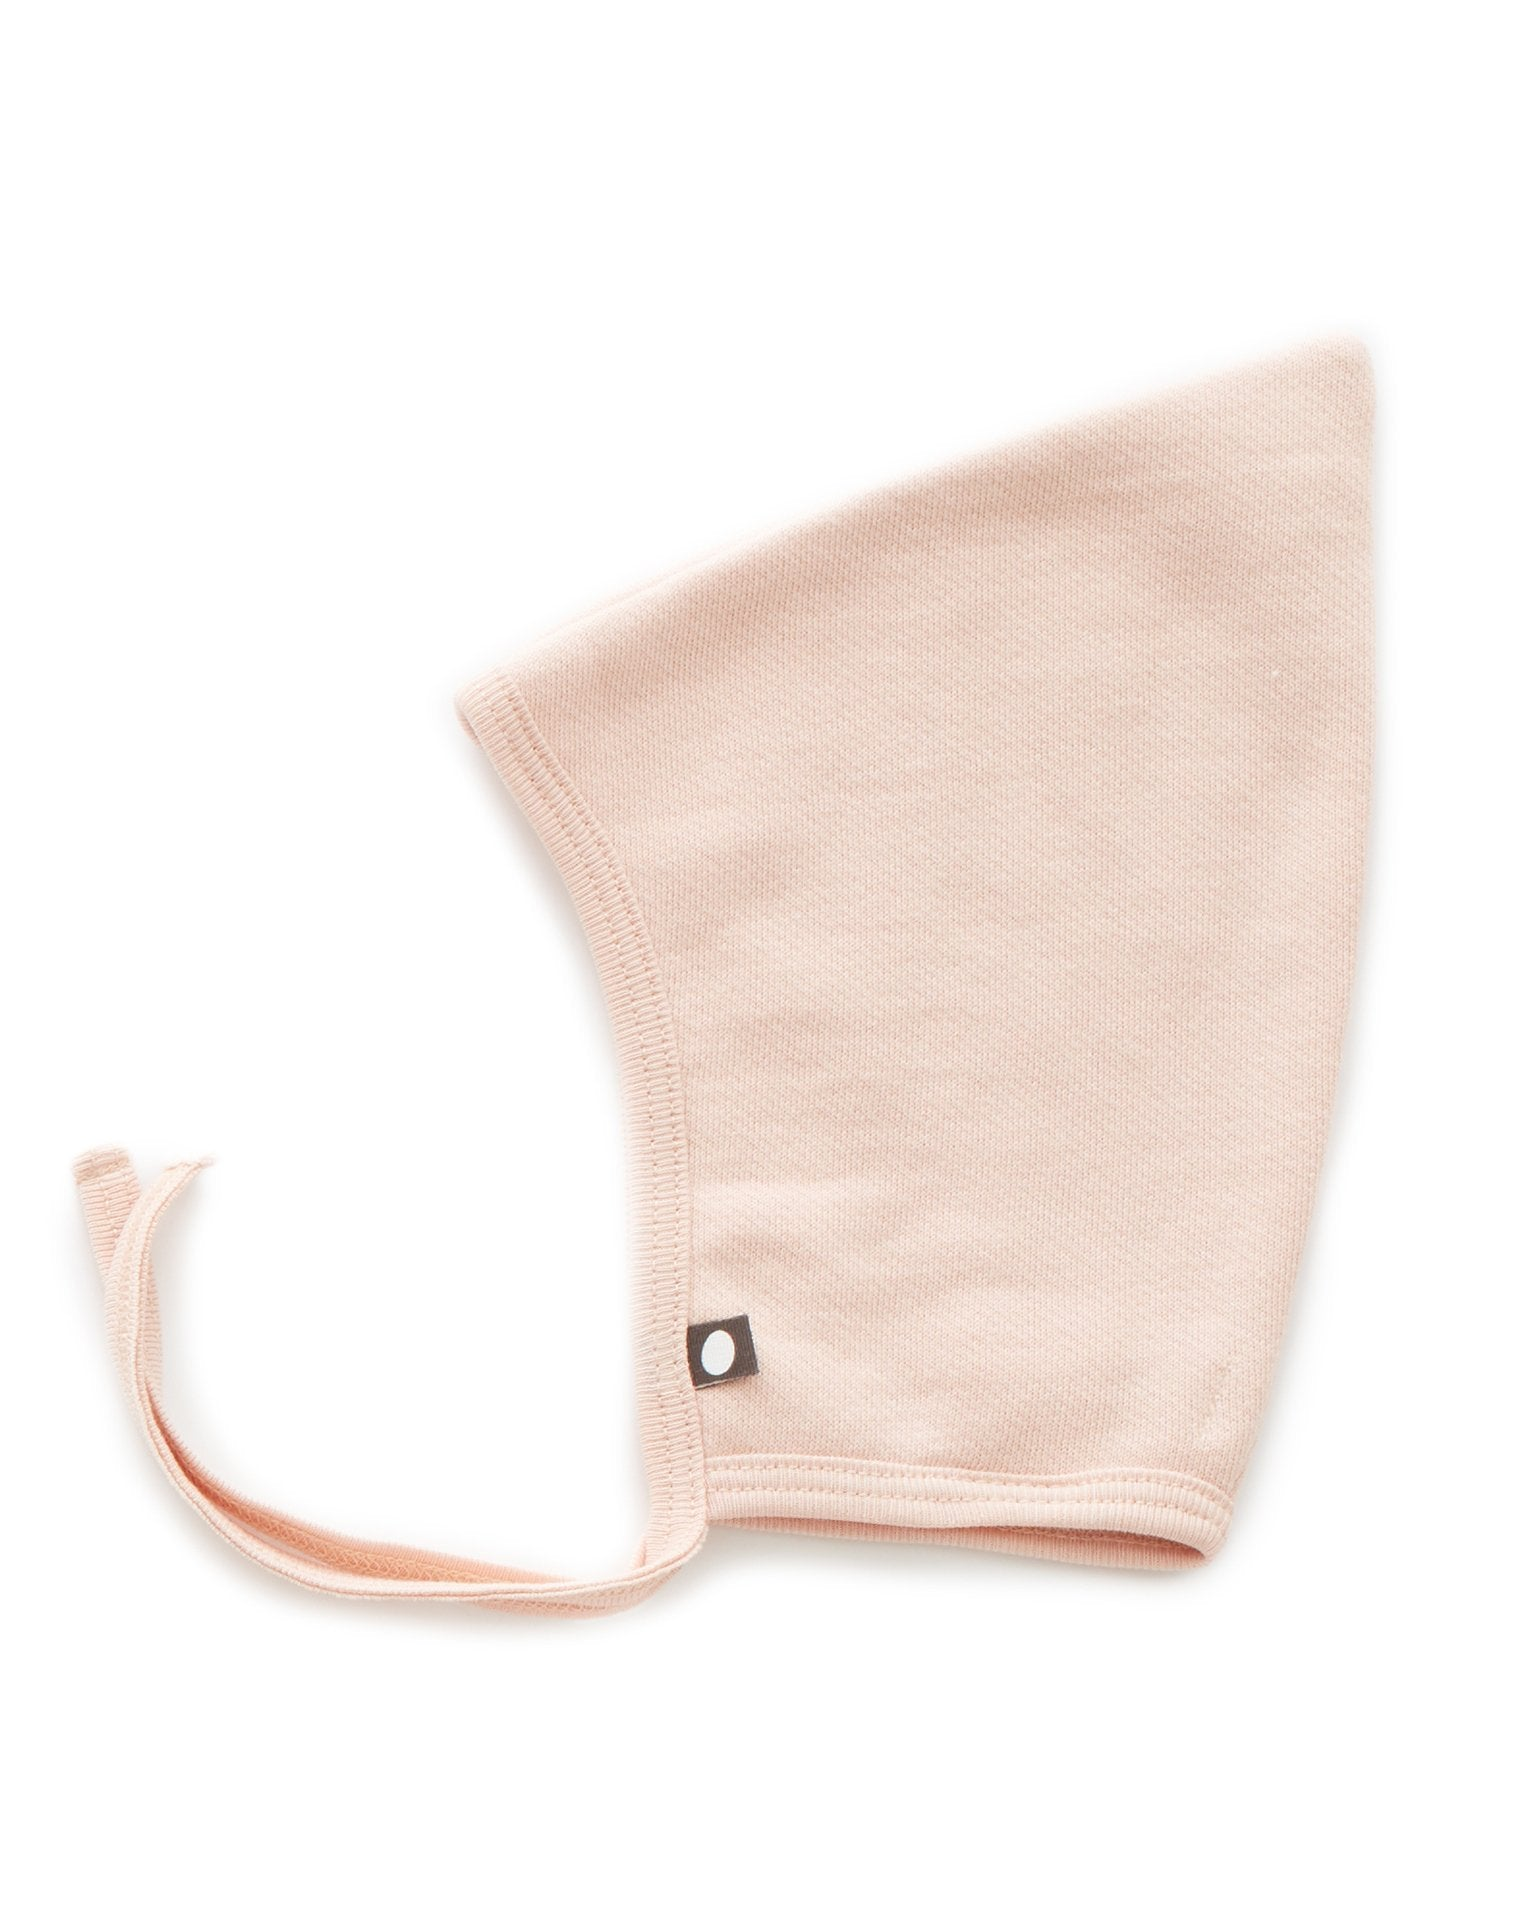 Little oeuf baby accessories pixie hat in light pink